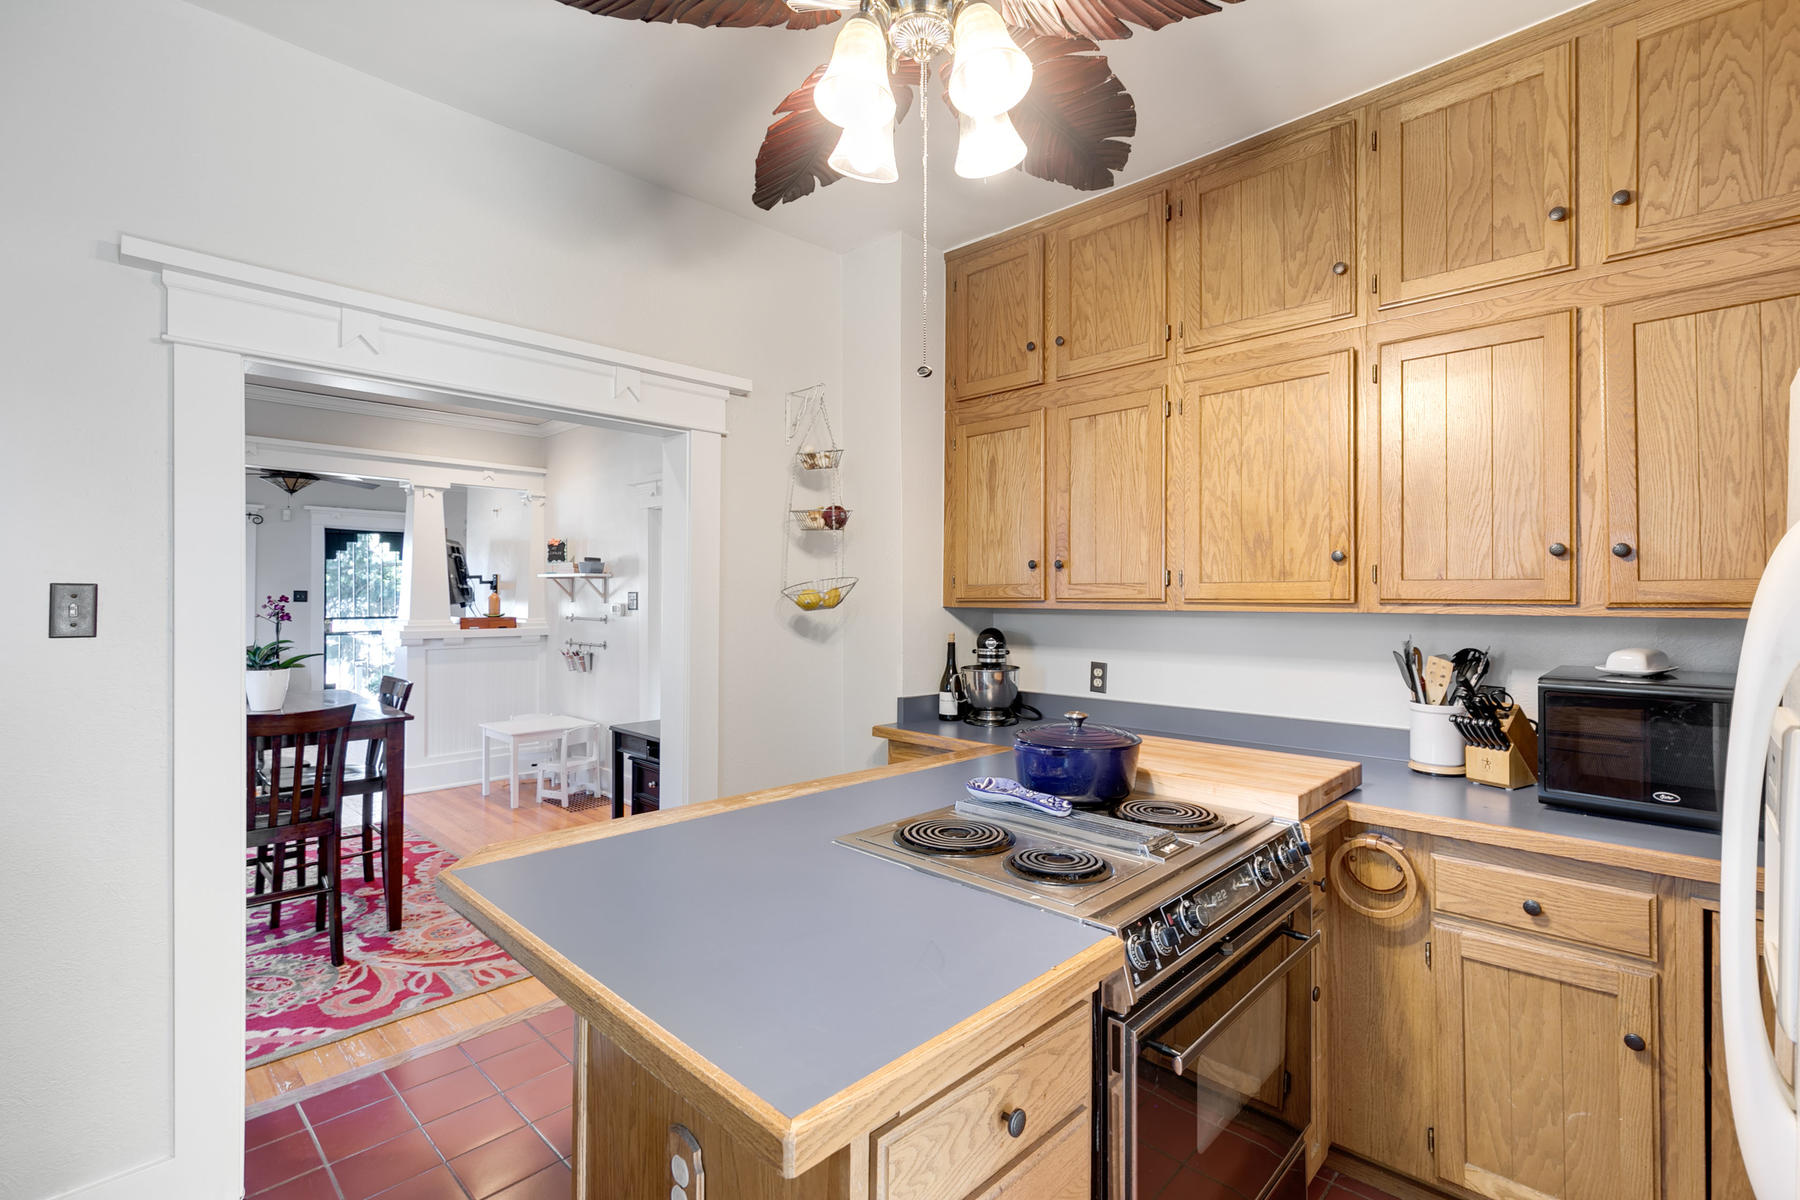 3230 S Lincoln St Englewood CO-015-030-15-MLS_Size.jpg